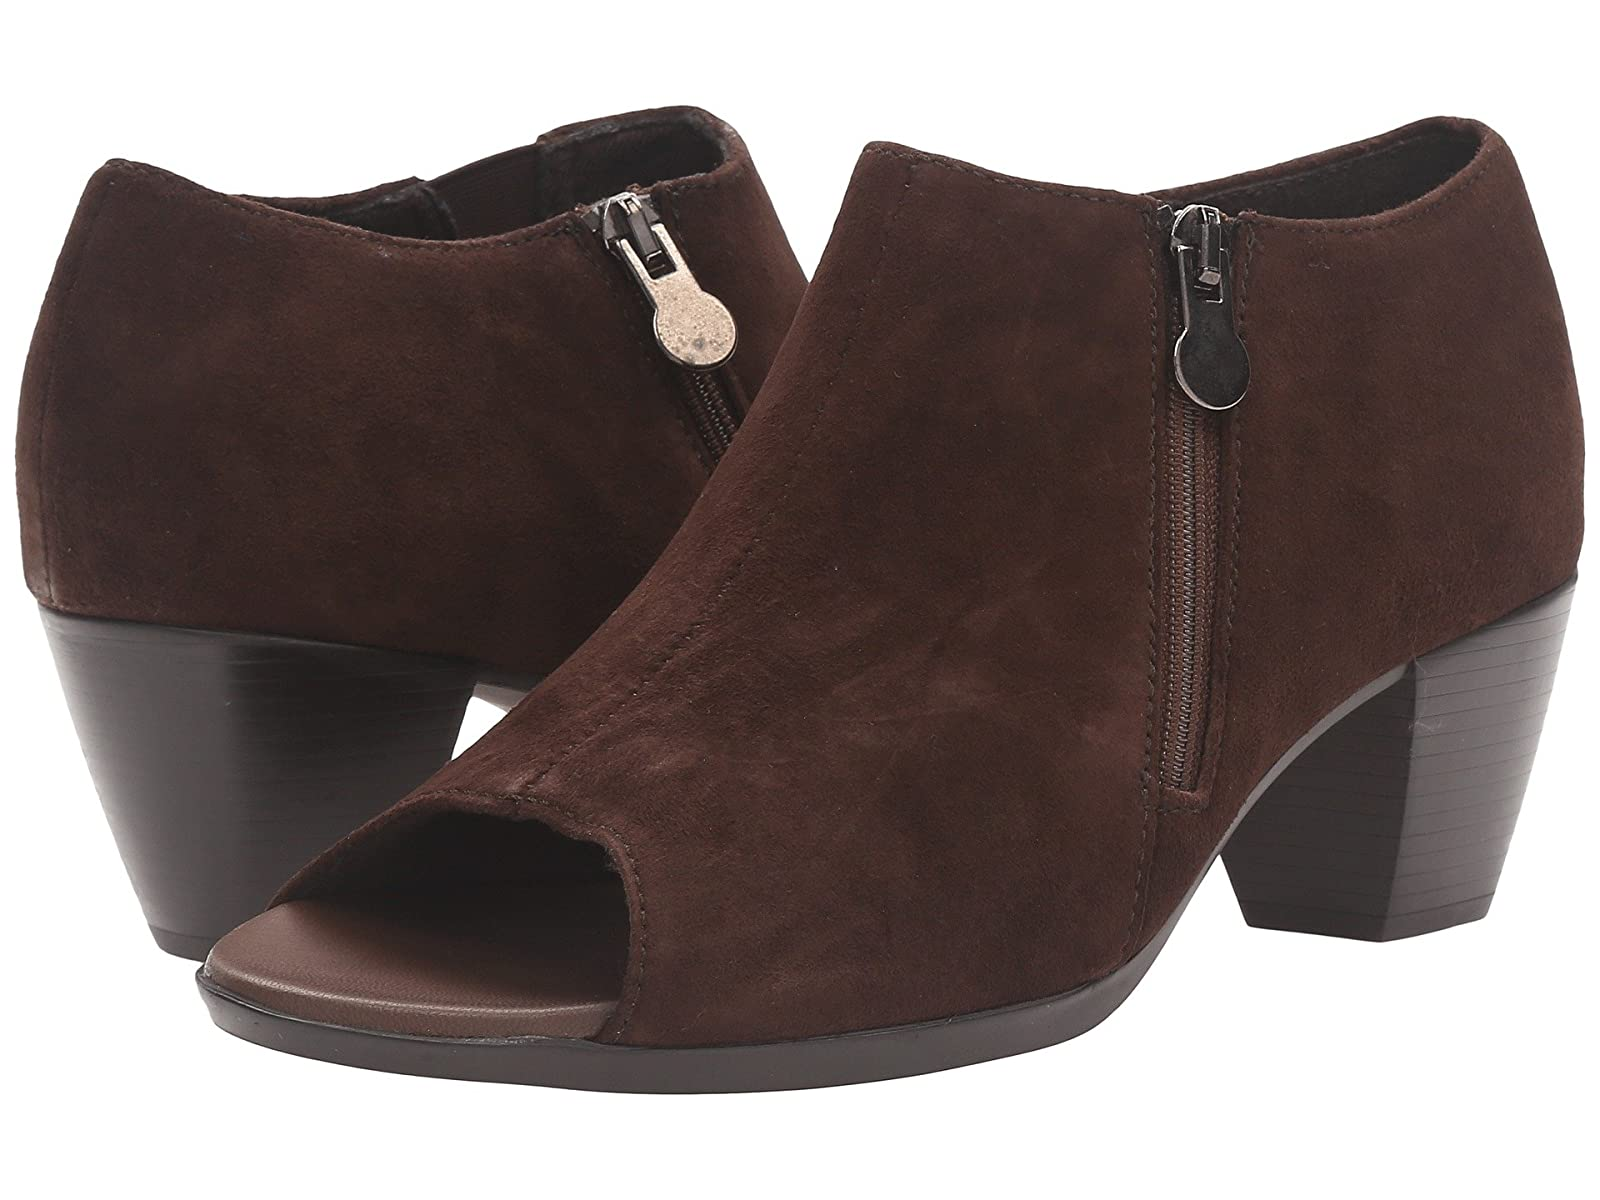 Munro LuisaCheap and distinctive eye-catching shoes